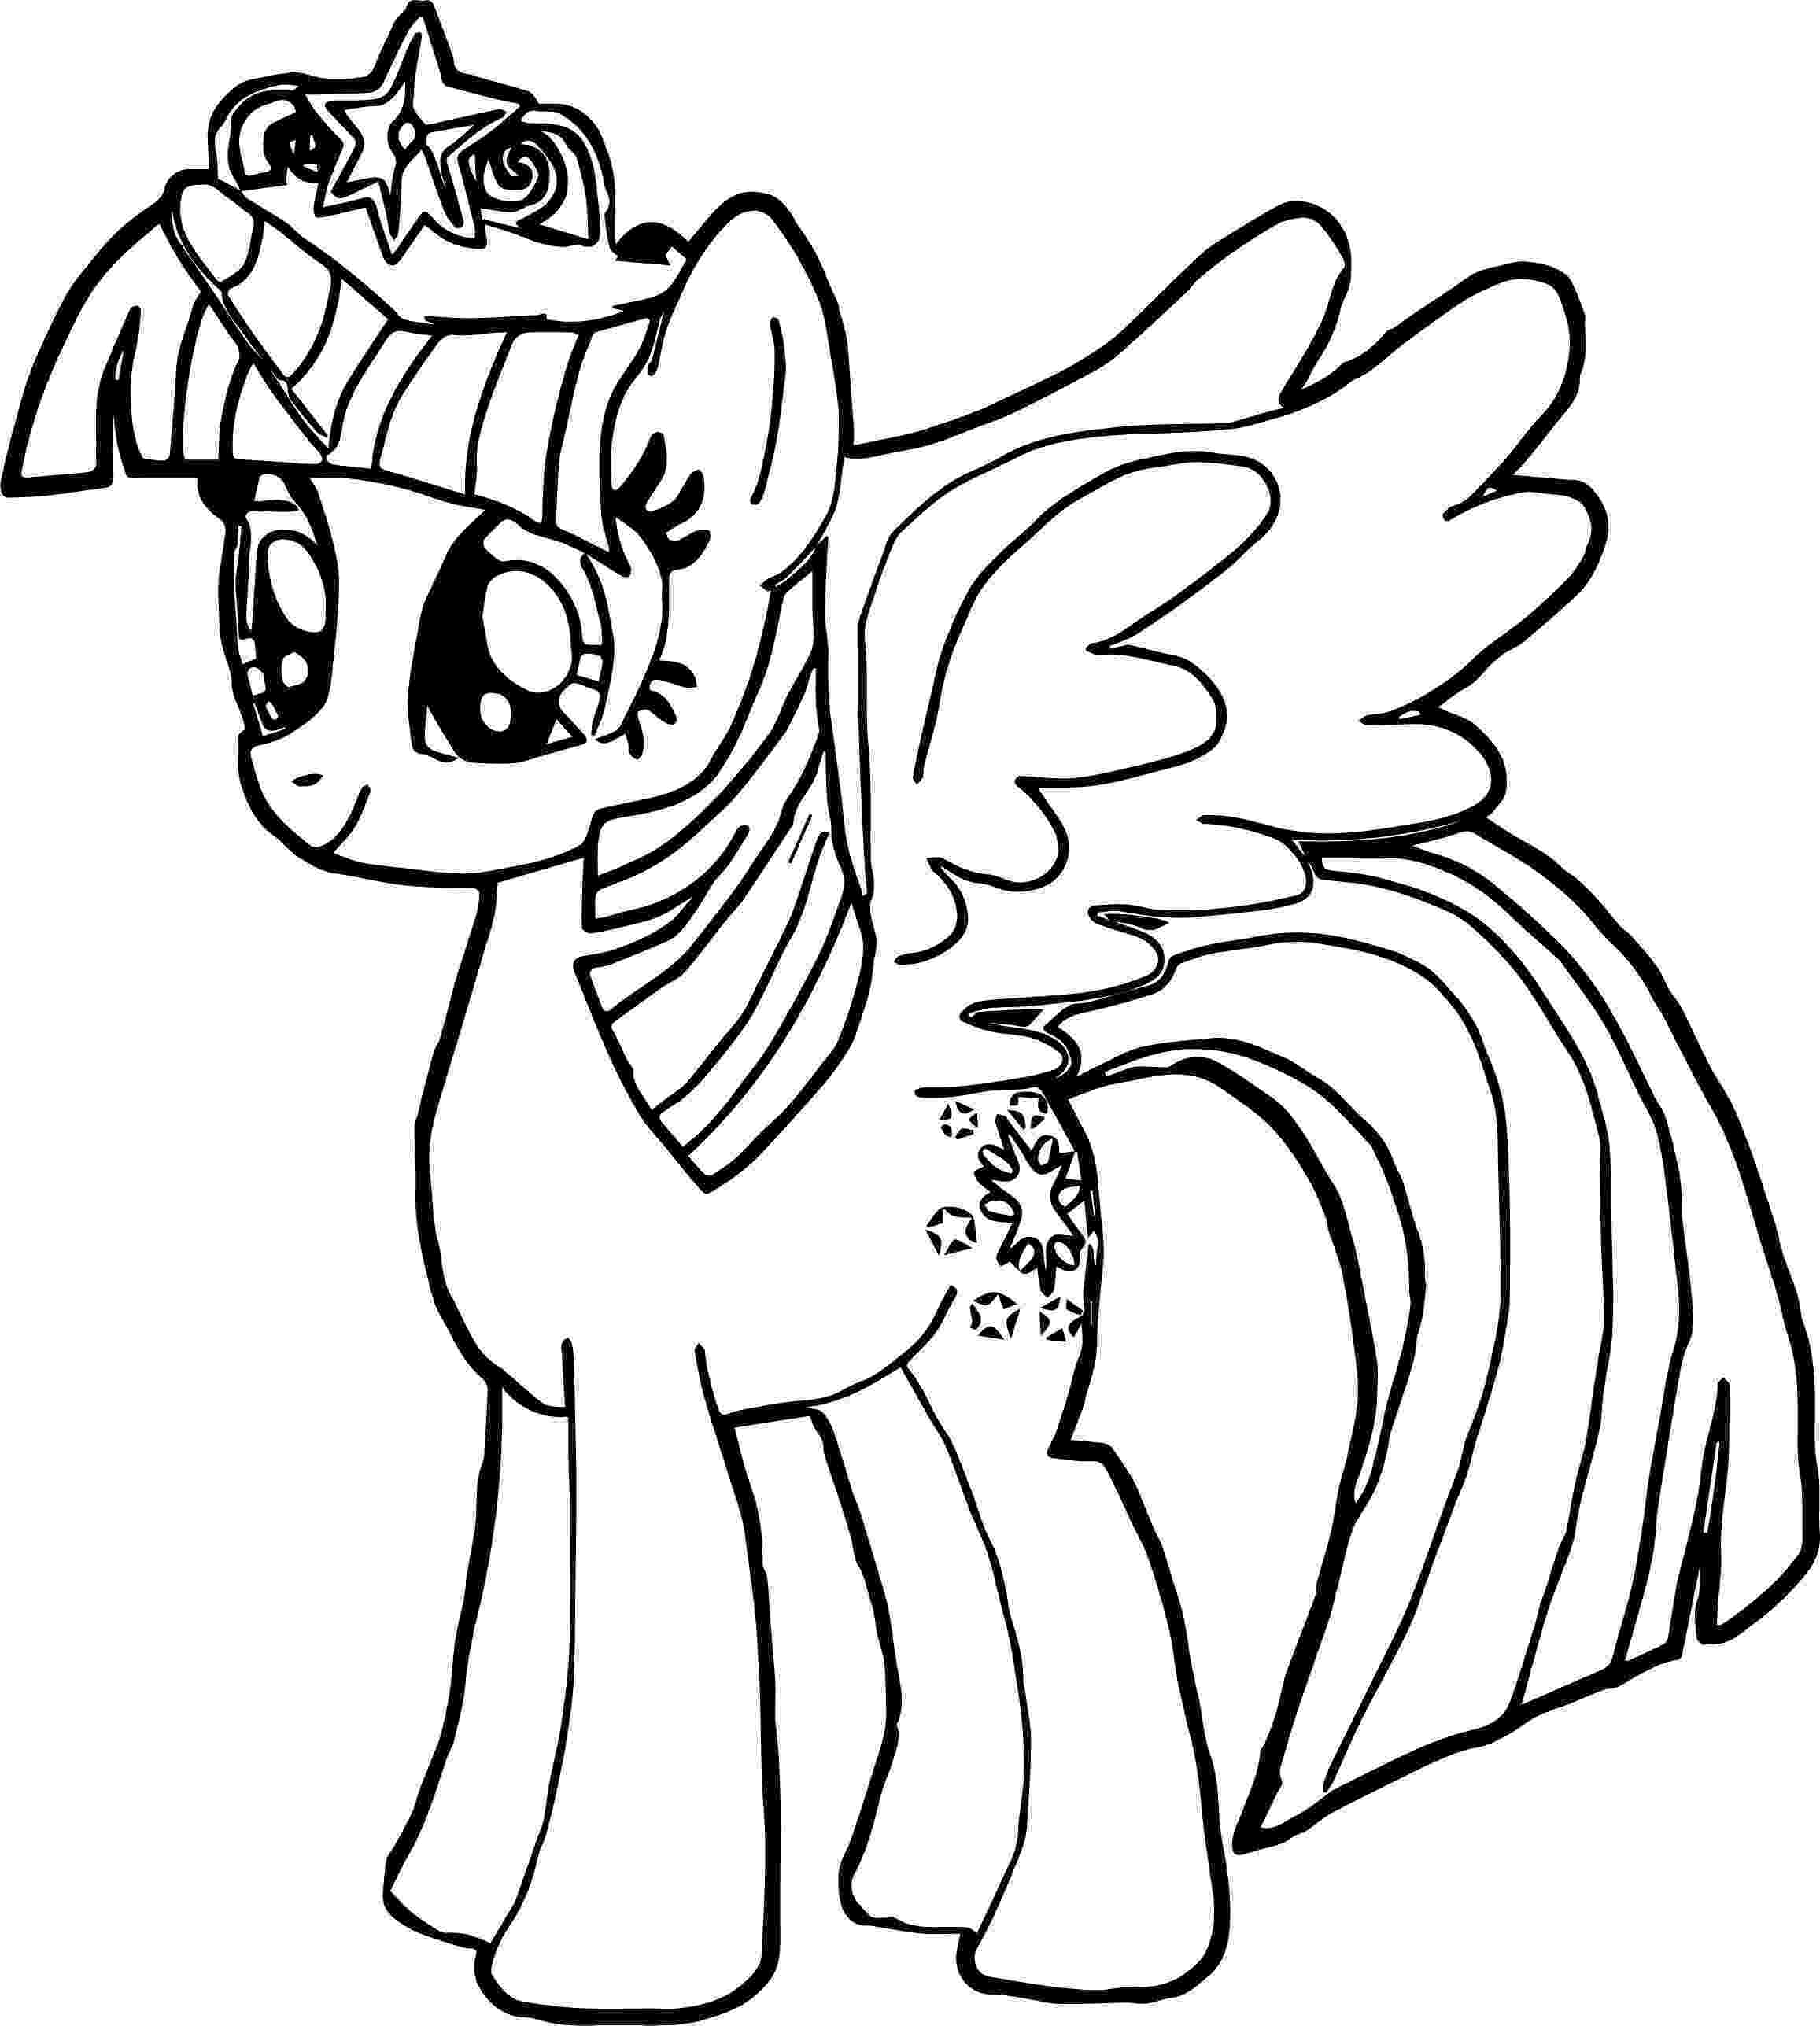 twilight sparkle colouring pages nice new princess twilight sparkle coloring page my pages sparkle colouring twilight